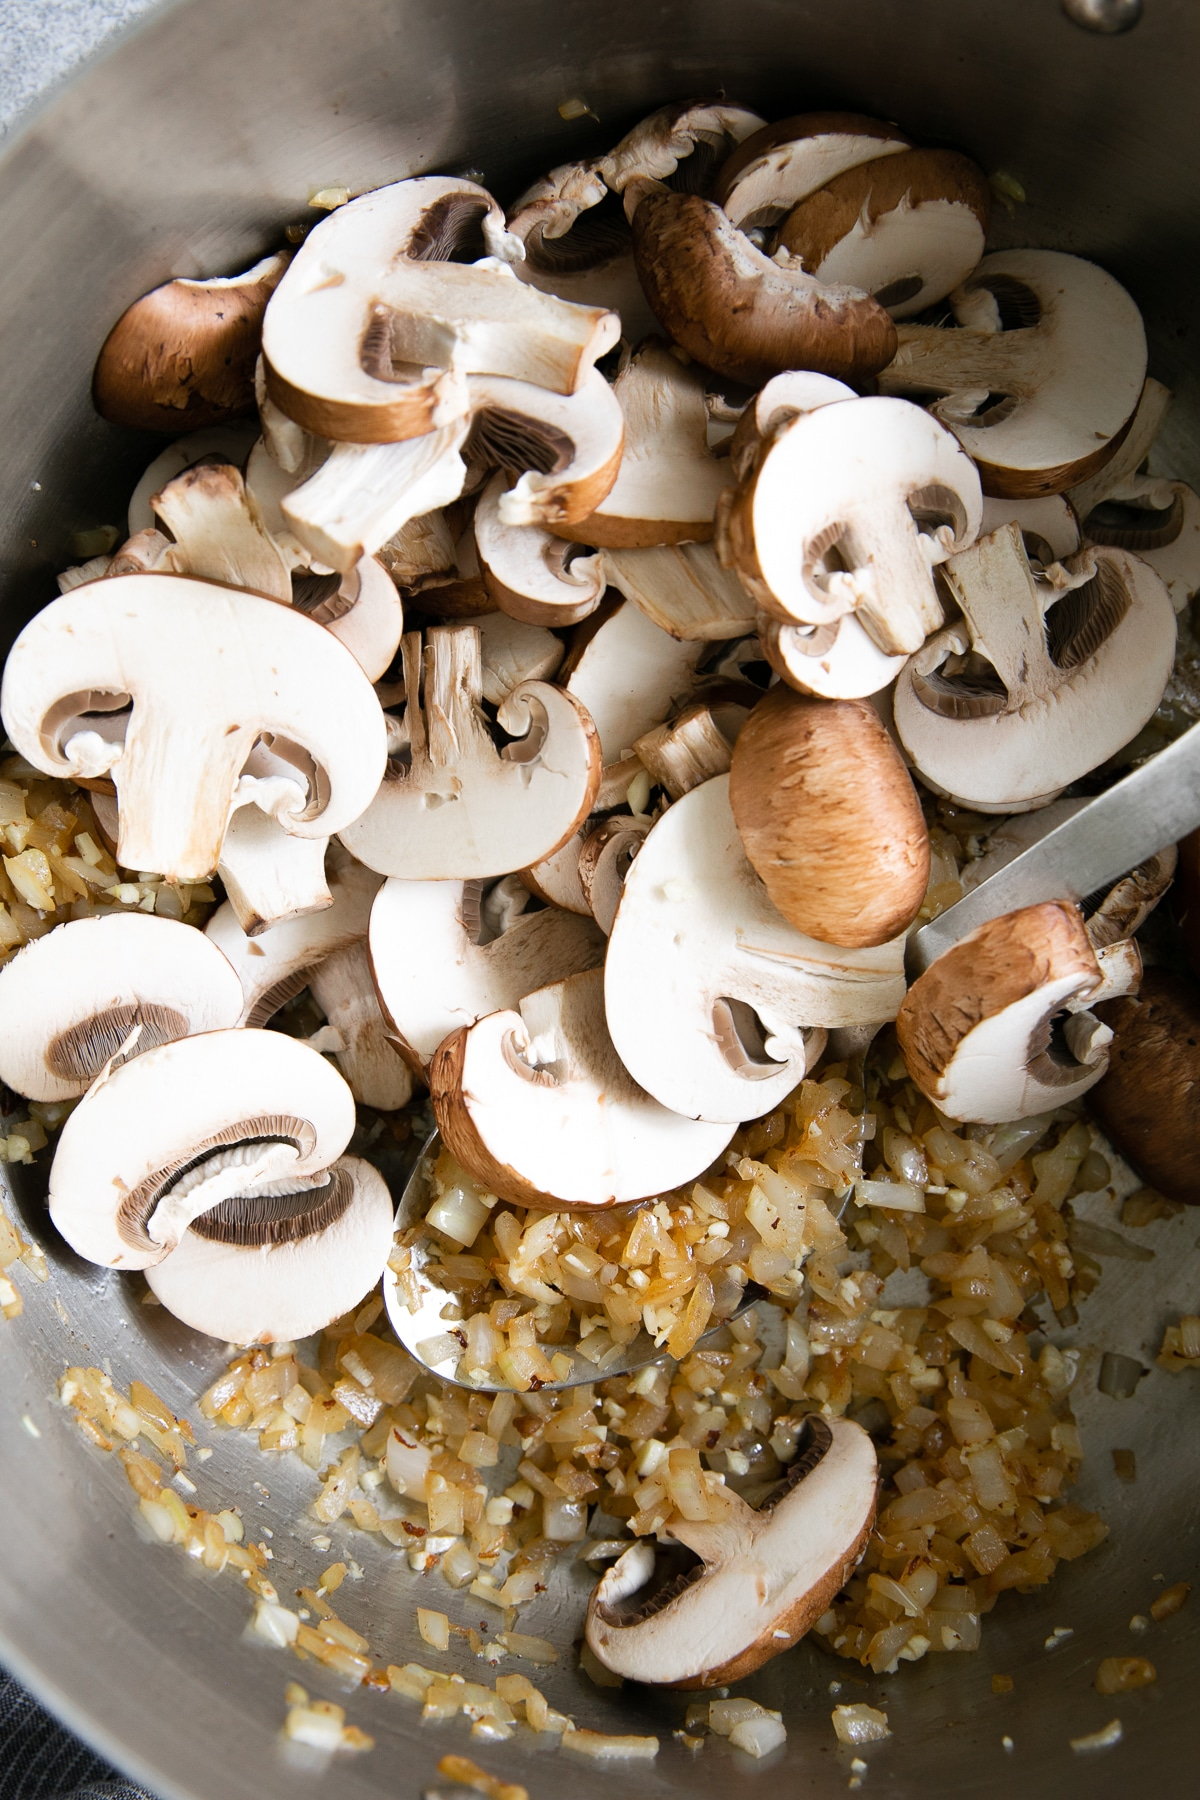 Onions, garlic, and mushrooms cooking in a large skillet.